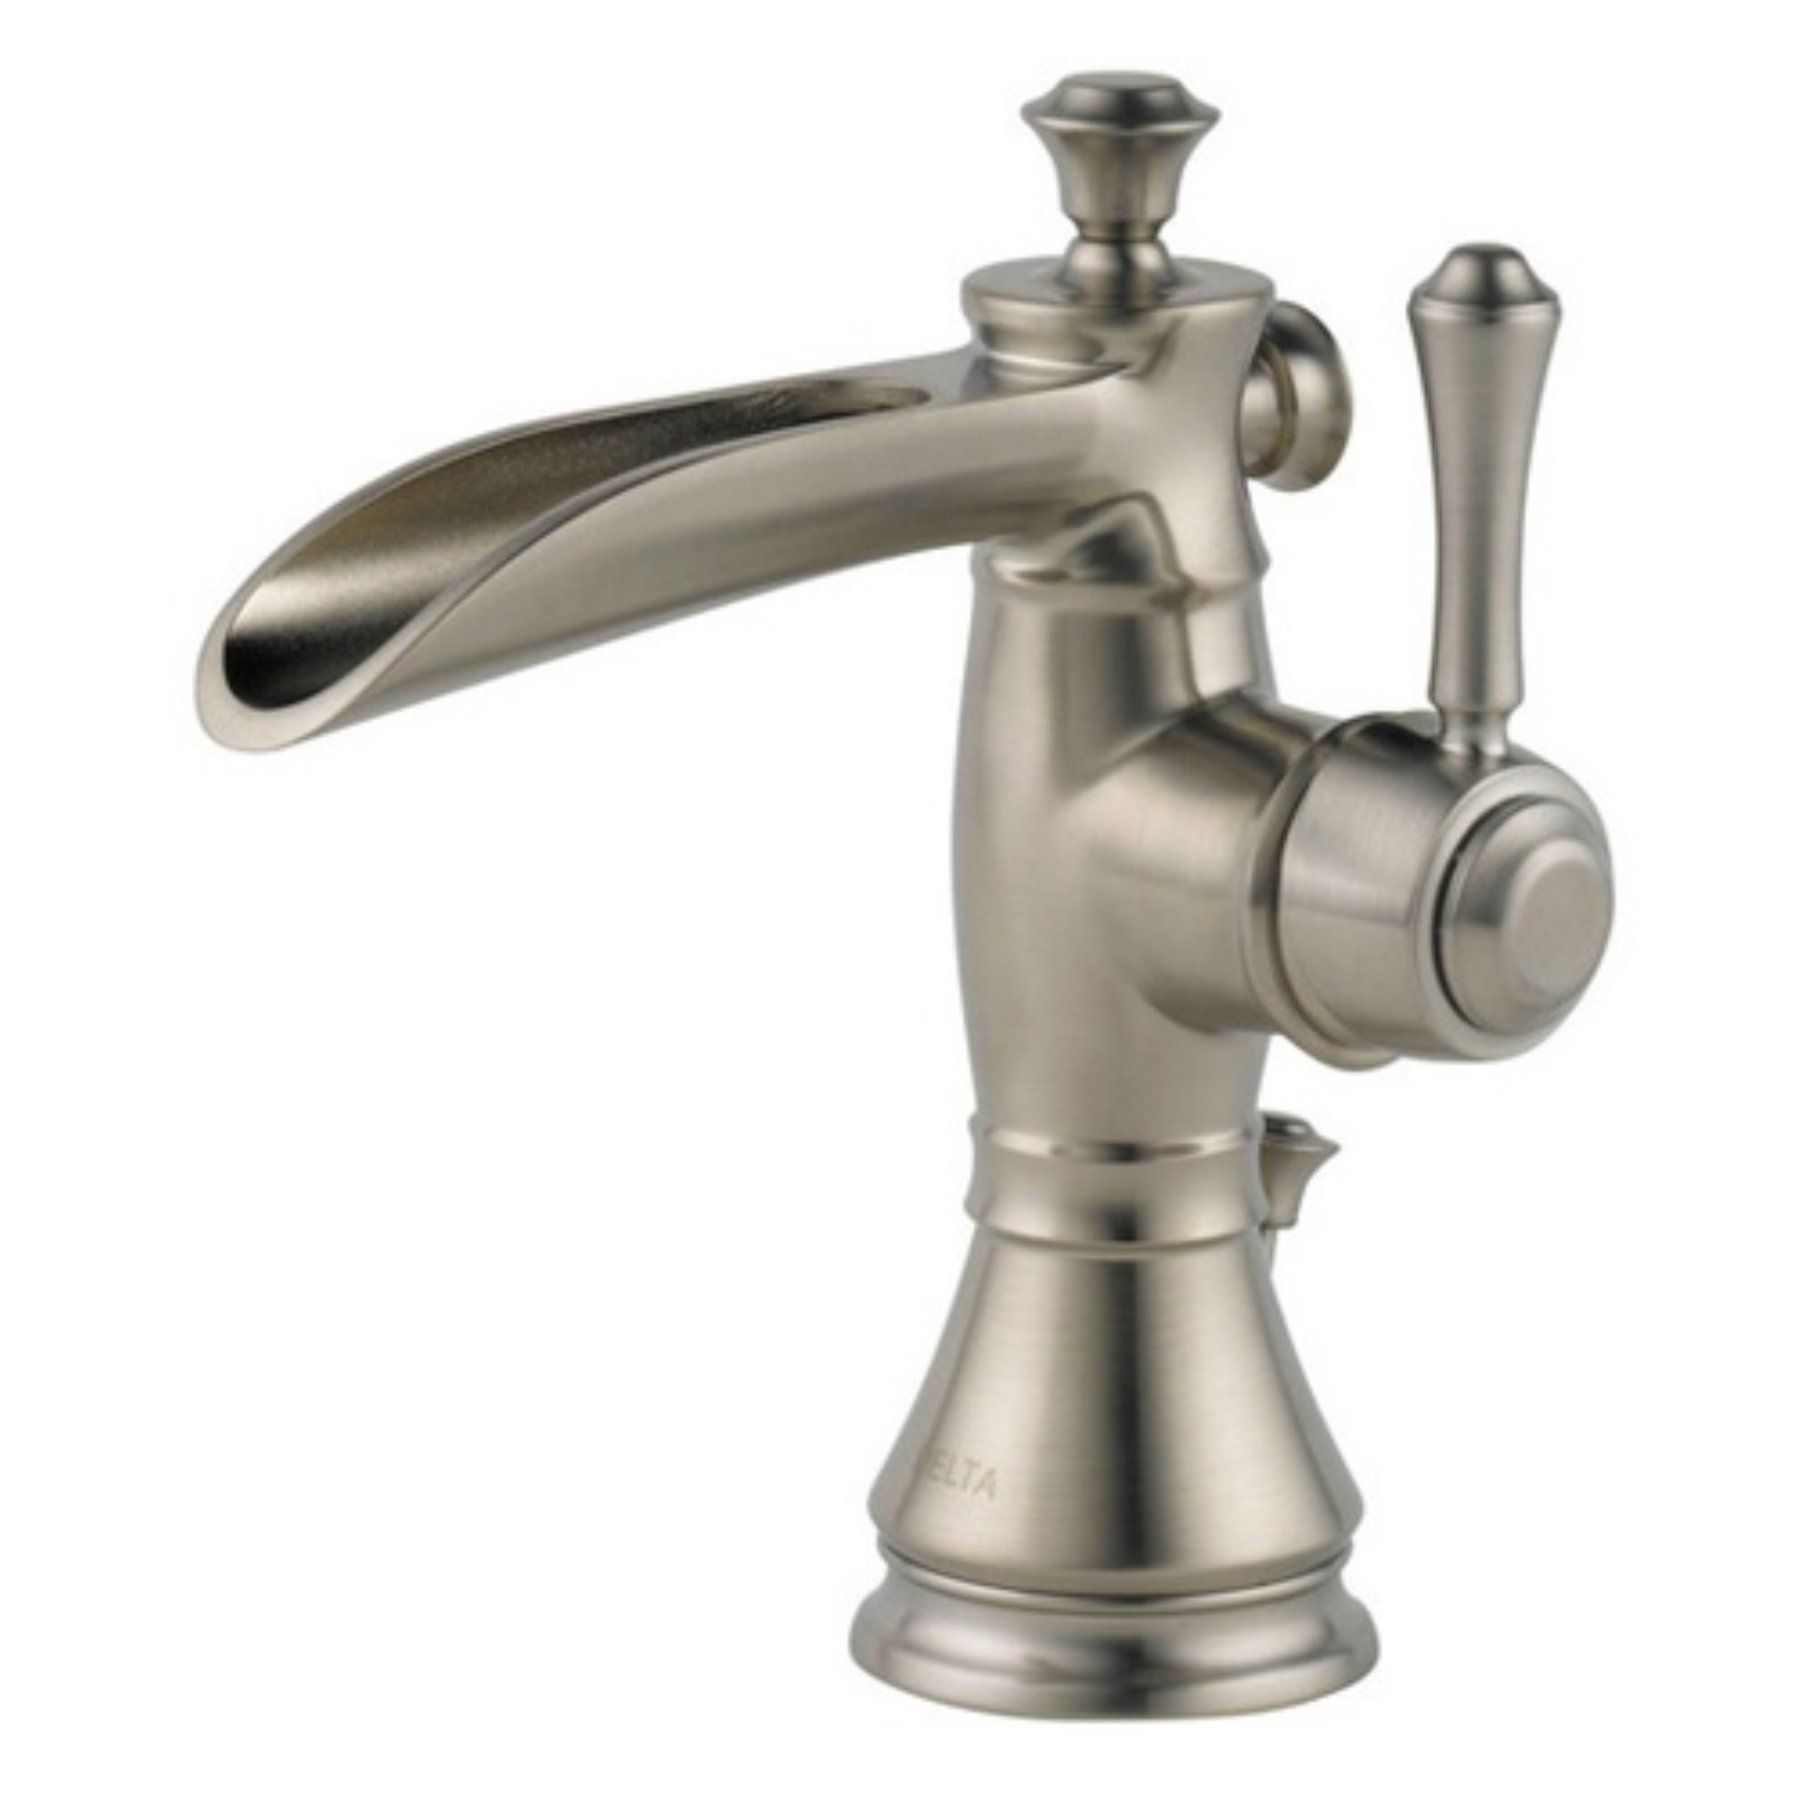 Delta Cassidy Single Handle Channel Spout Bathroom Faucet